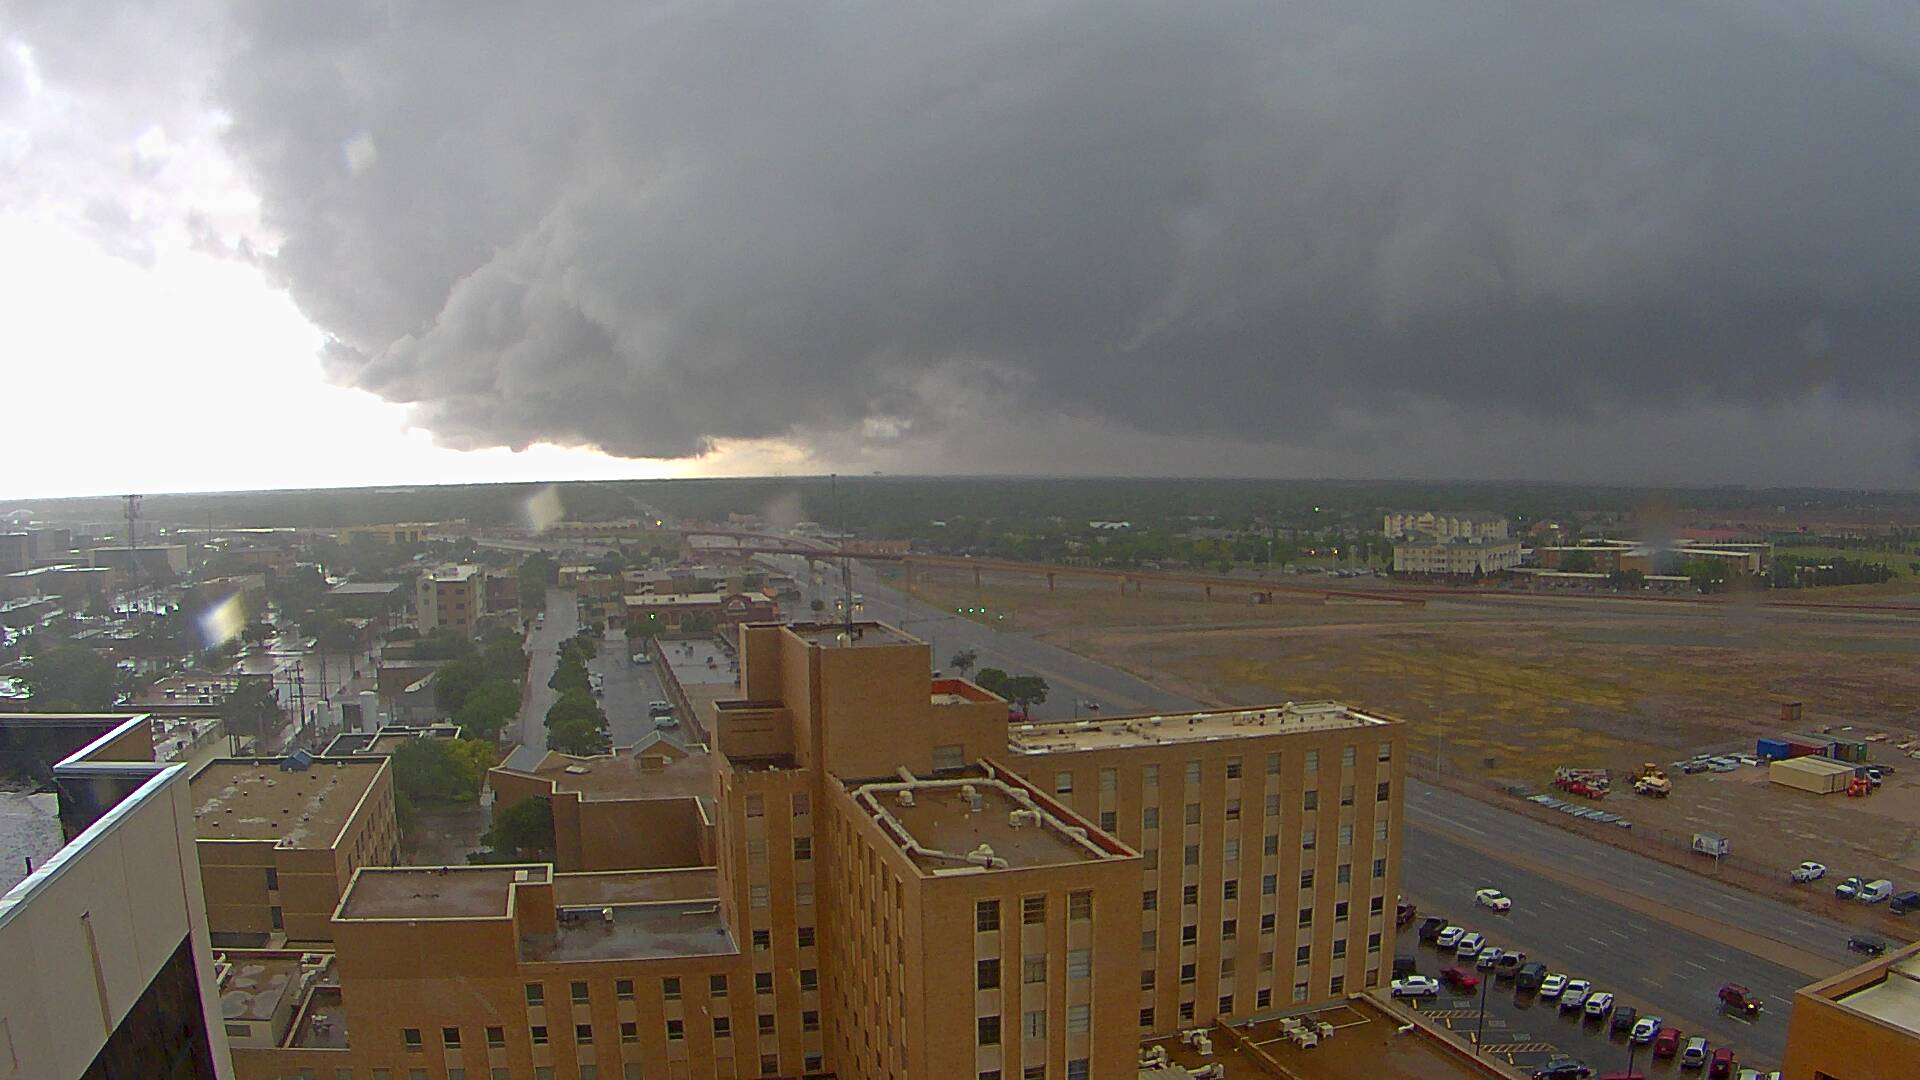 Pictures of storm clouds around the South Plains on the Memorial Day (26 May 2014). This picture, courtesy of KAMC, shows a rain shaft and wall cloud on the west side of Lubbock during the late afternoon.